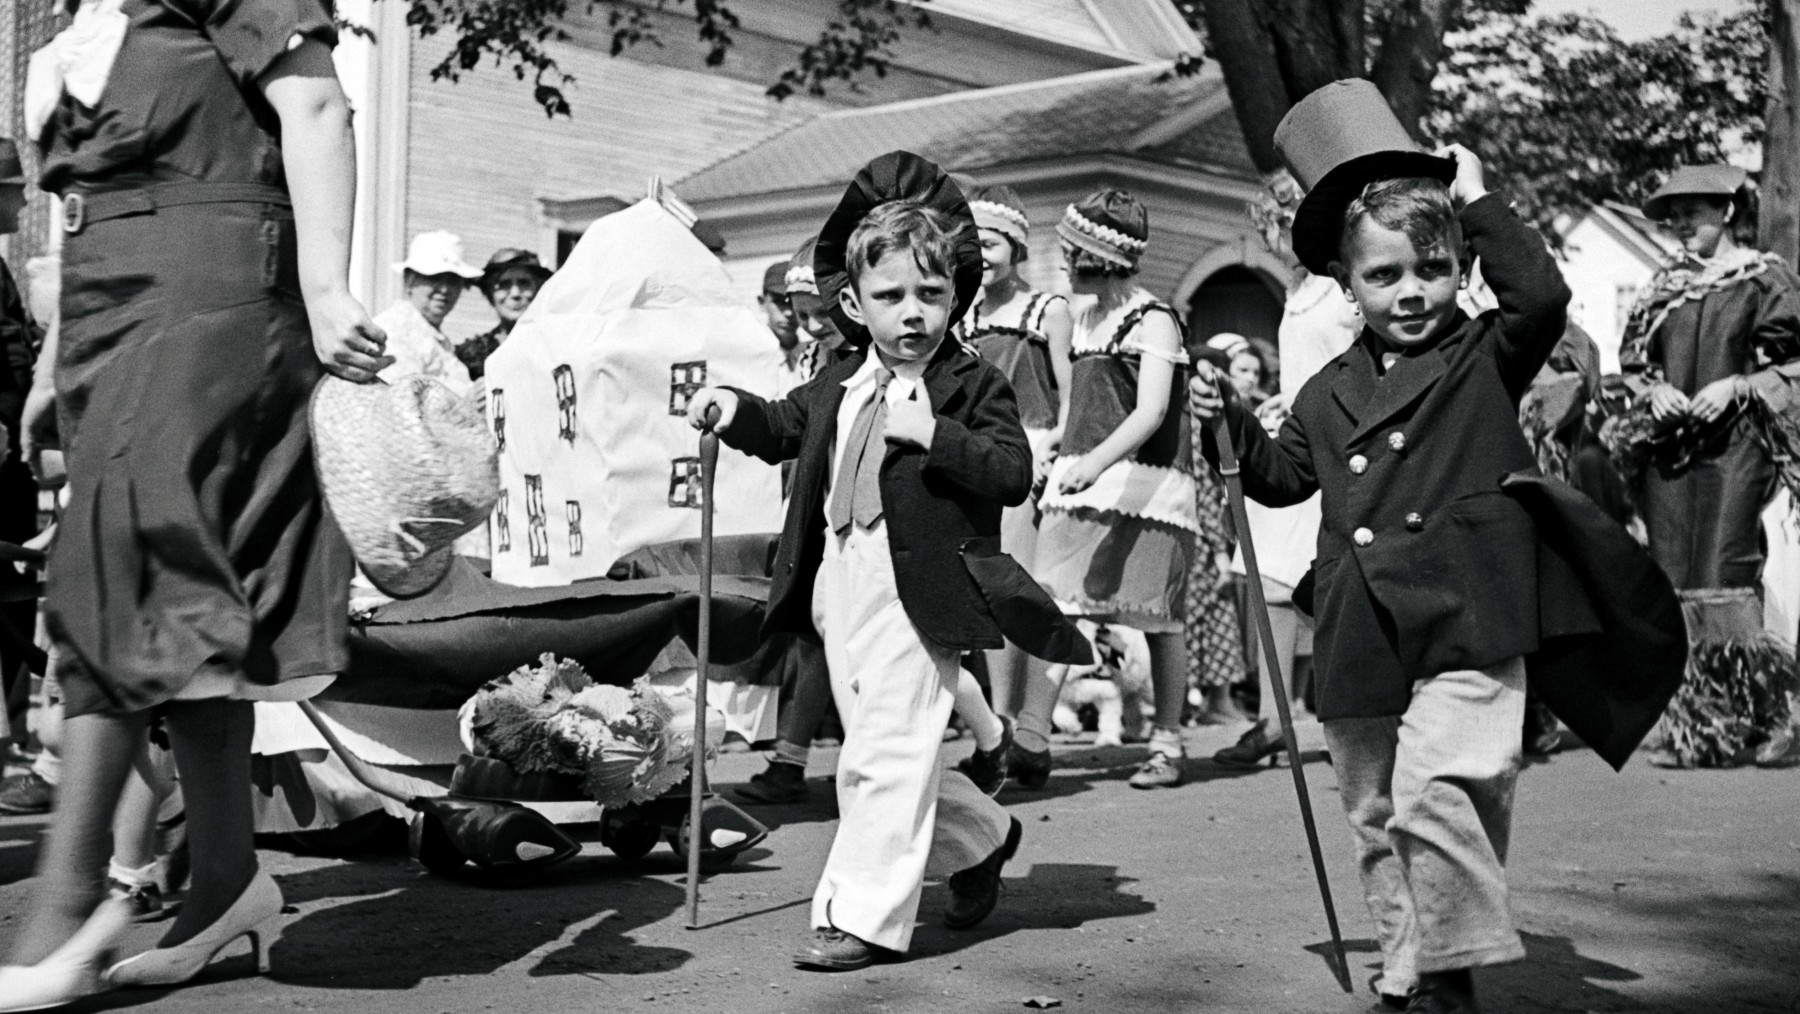 Parade at the fair in Albany, Vermont during September 1936. (Carl Mydans; Prints and Photographs Division, Library of Congress, Washington, D. C.)